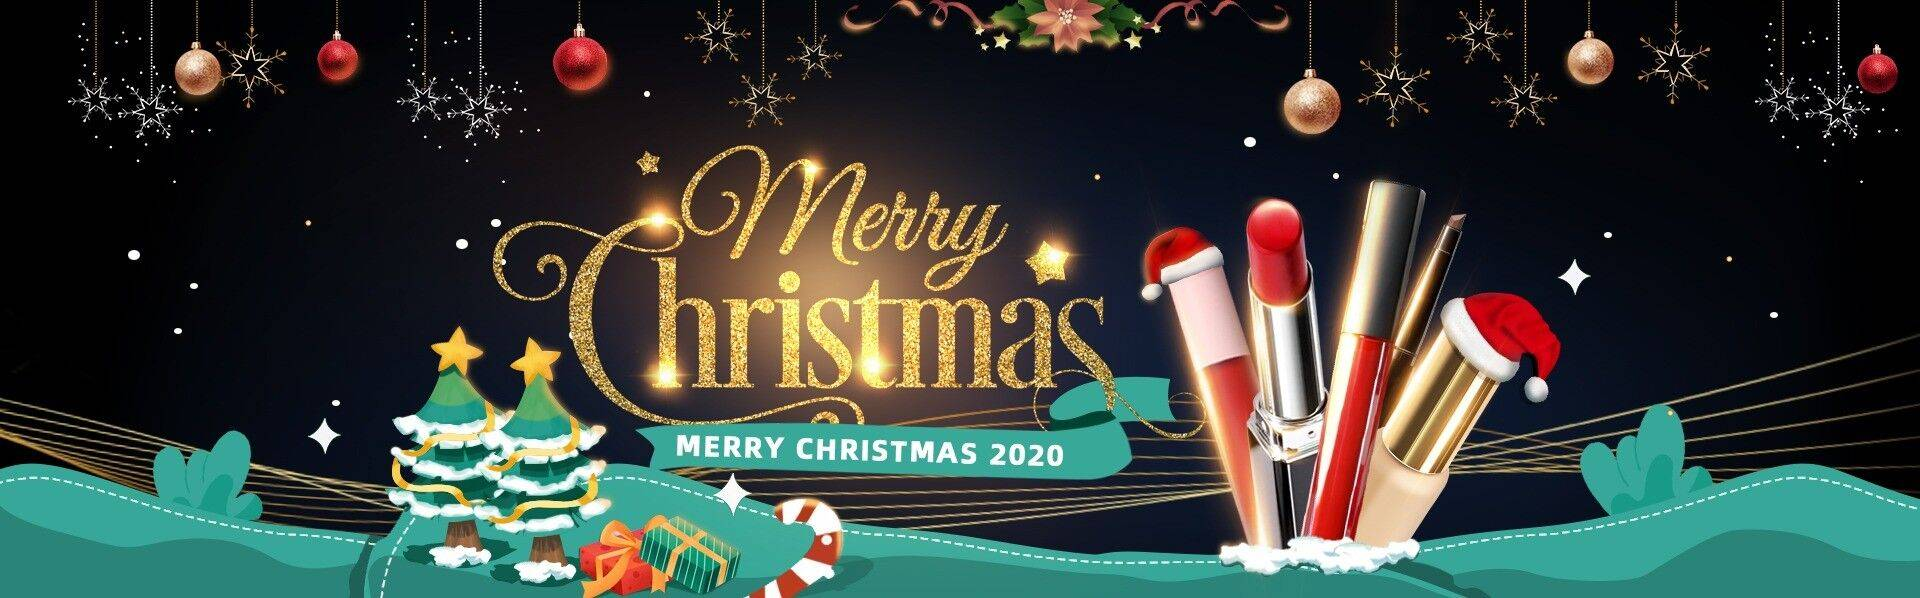 Merry Christmas | I Want To Spend The Last Christmas Of The 2020s With You